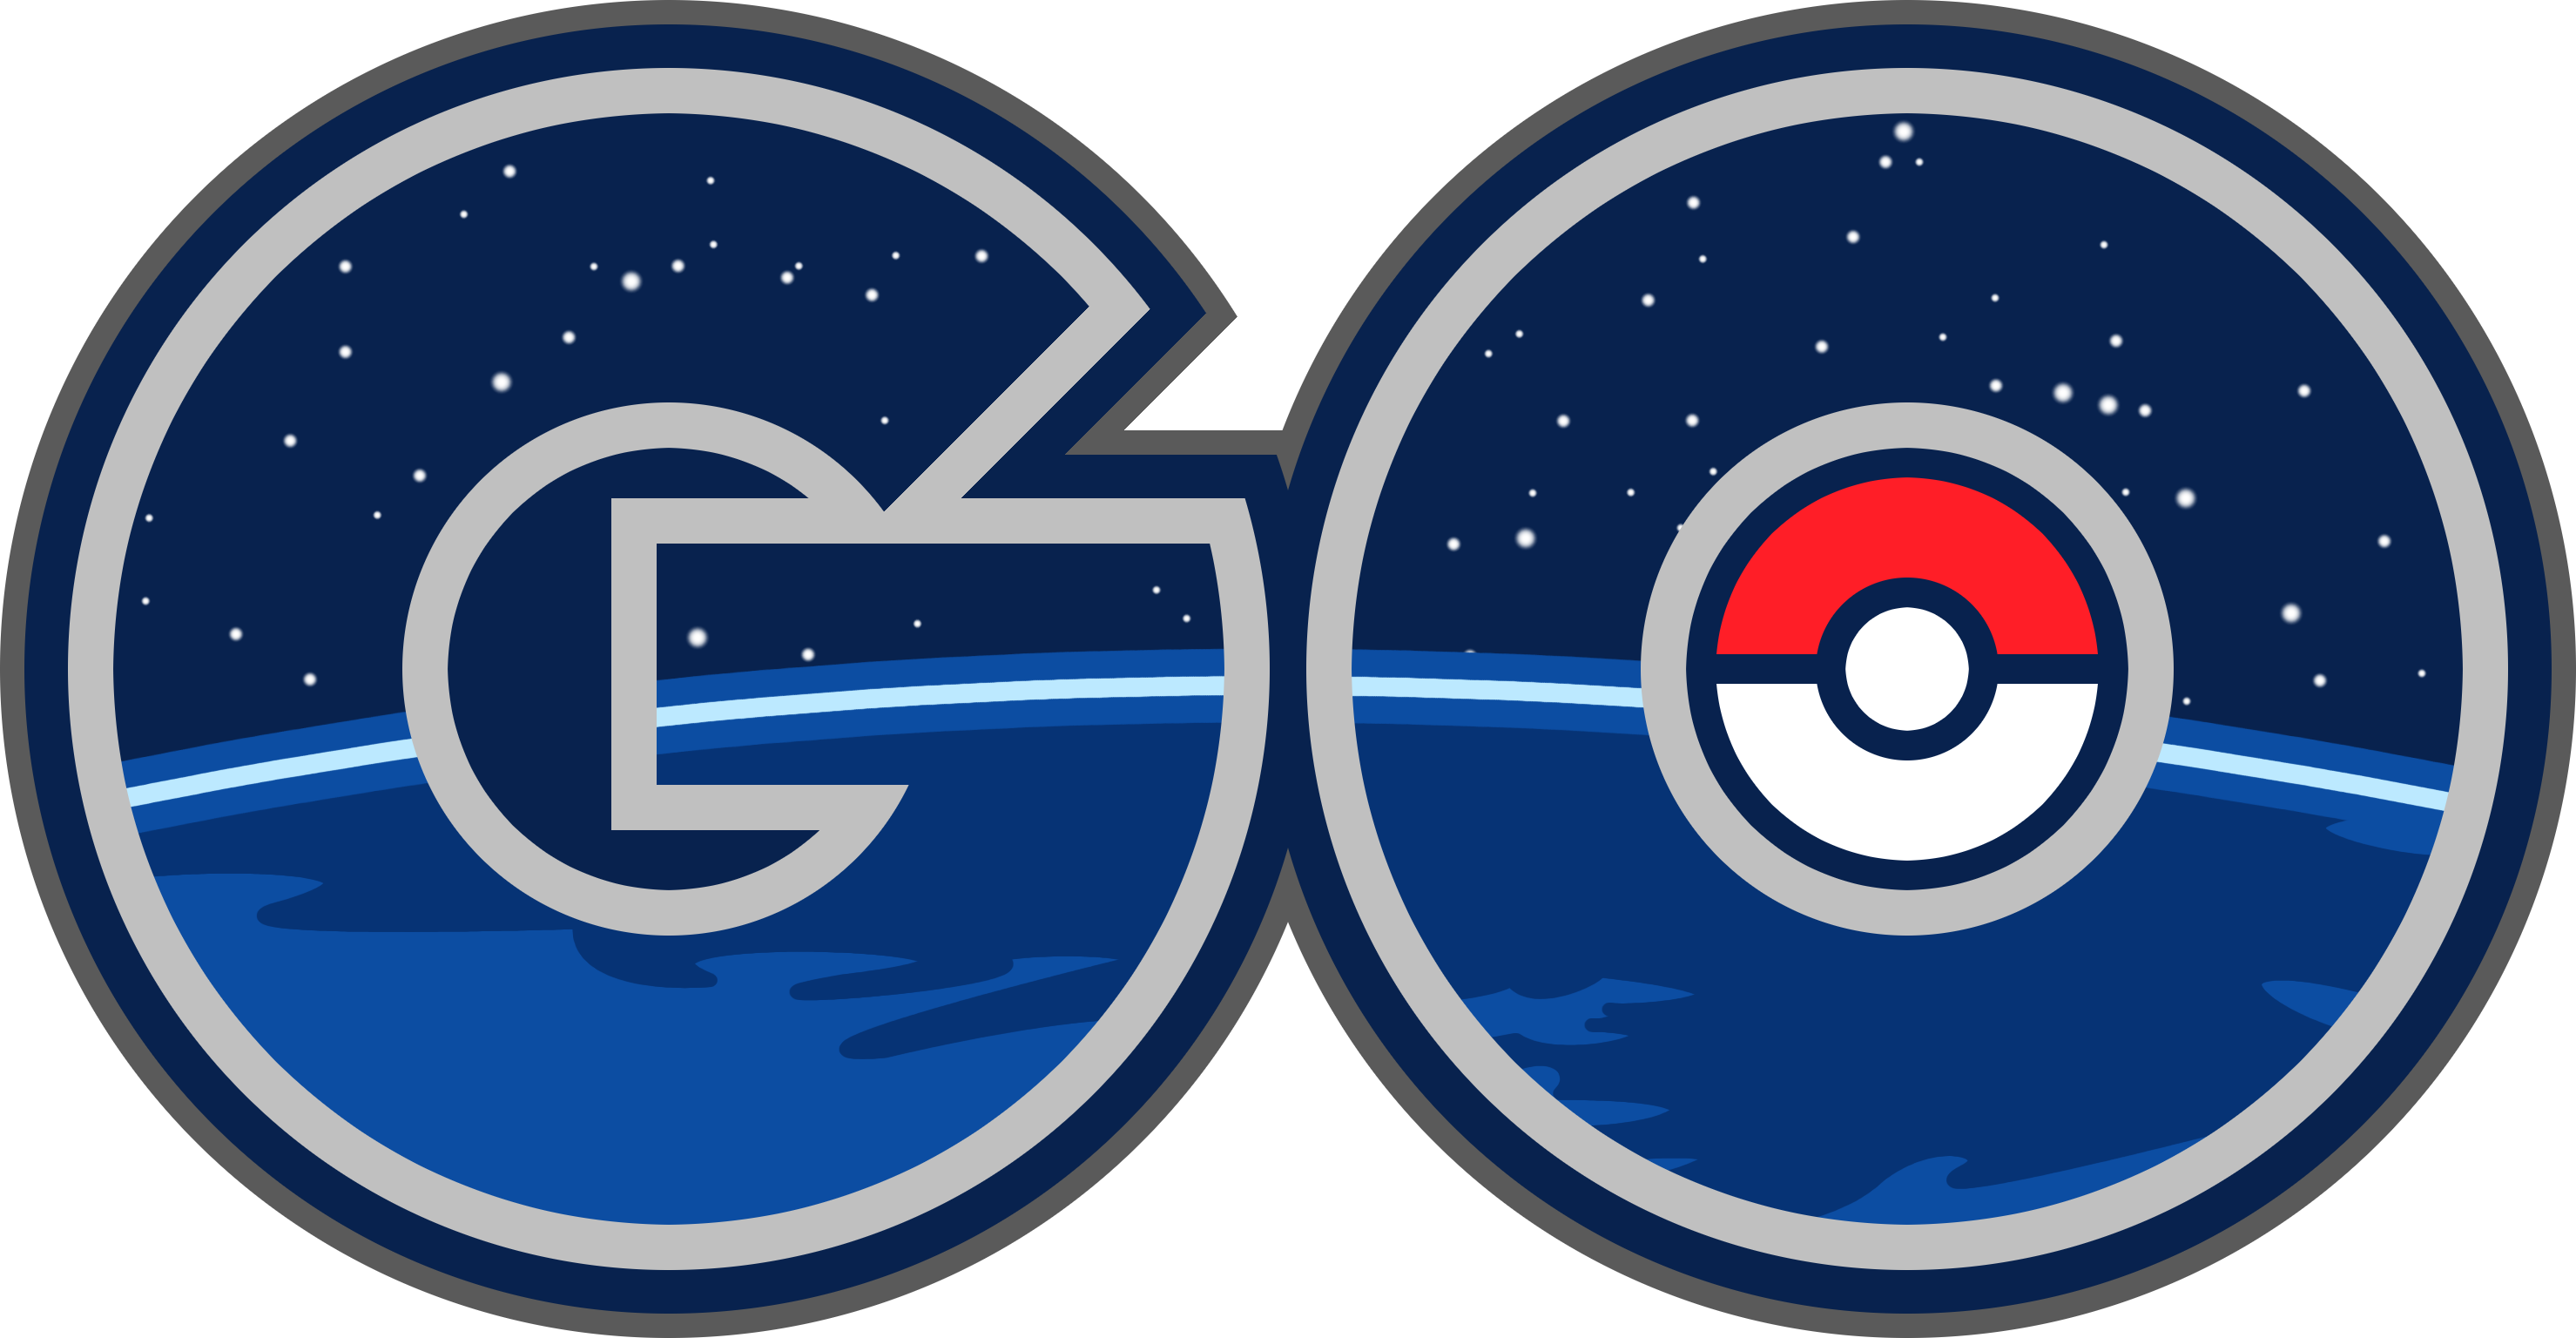 Pokemon Go Logo Vector Wallpaper